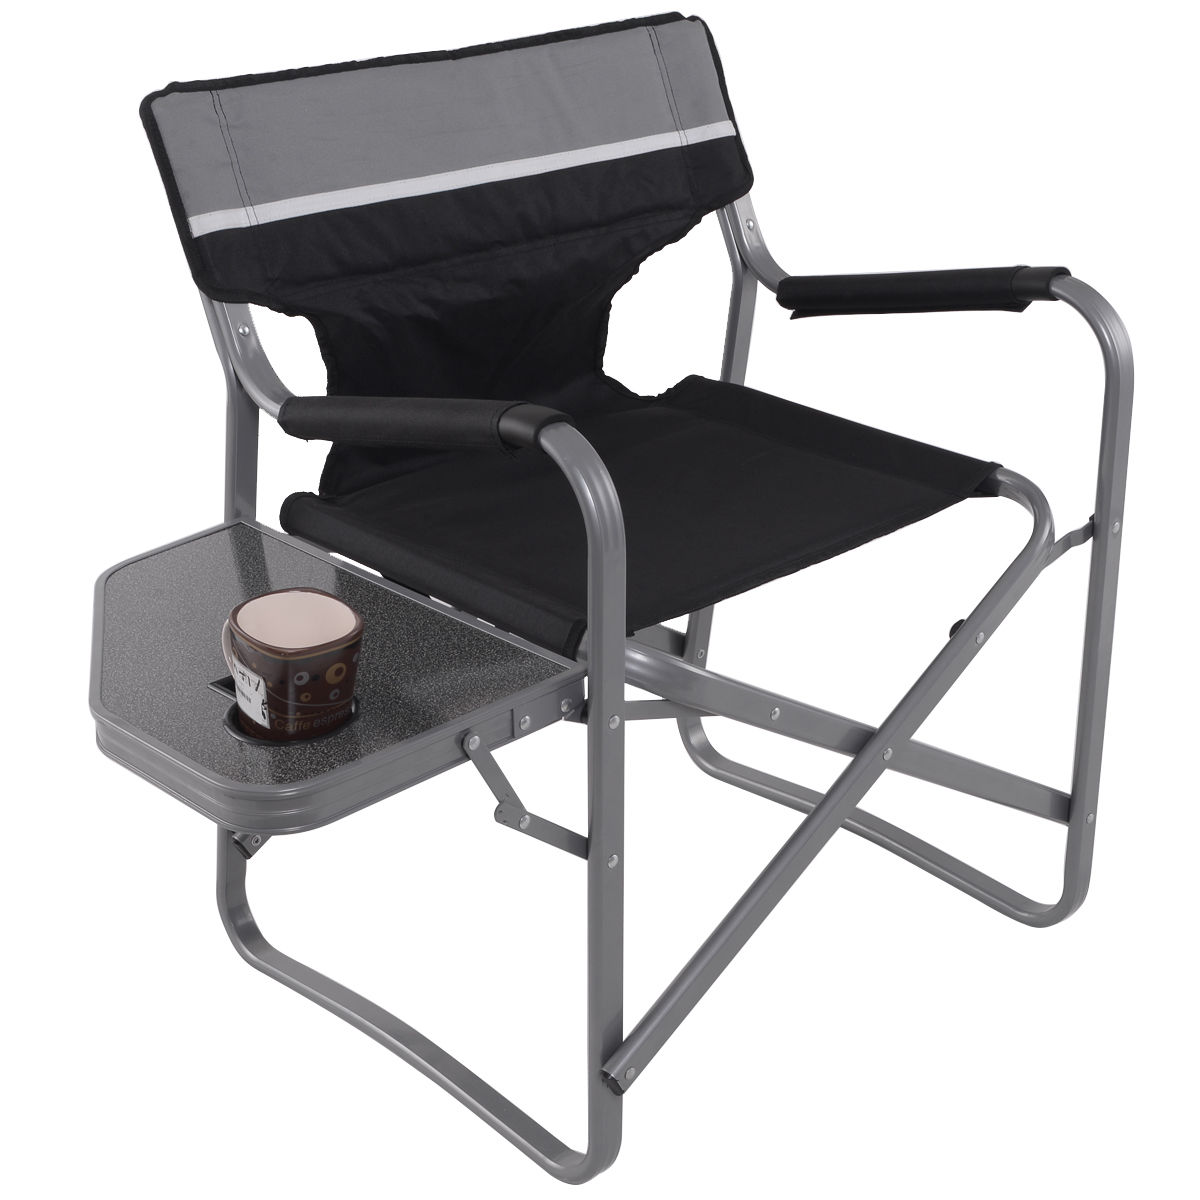 Folding Directors Chair With Side Table Us 47 13 25 Off Giantex Director S Chair Folding Side Table Outdoor Camping Fishing Chair With Cup Holder Portable Director Chair Op3208 In Beach